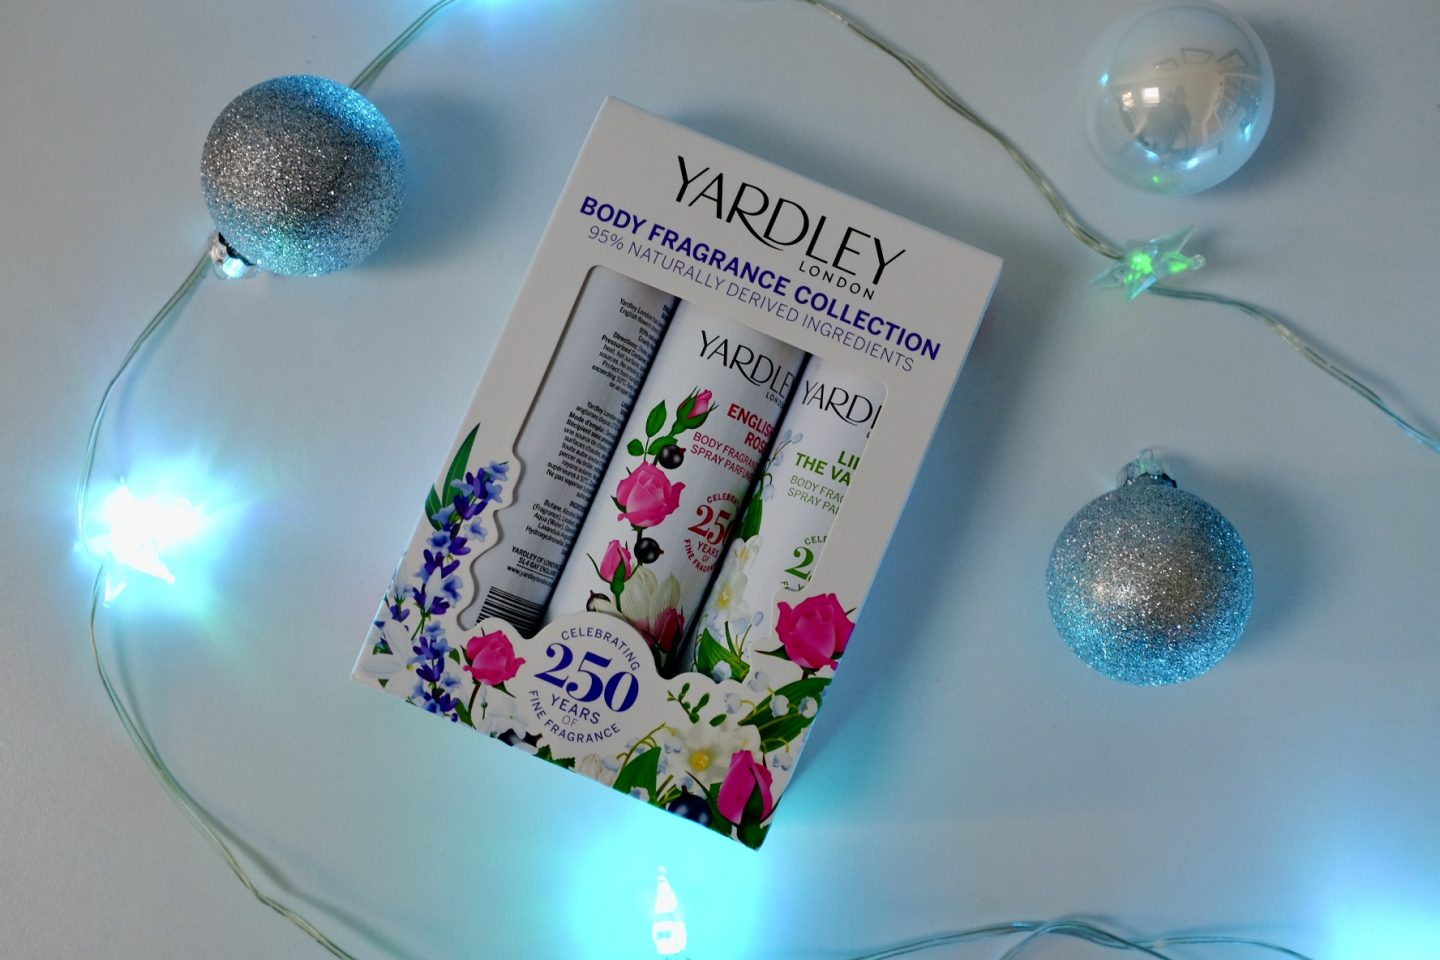 yardley London body spray collection